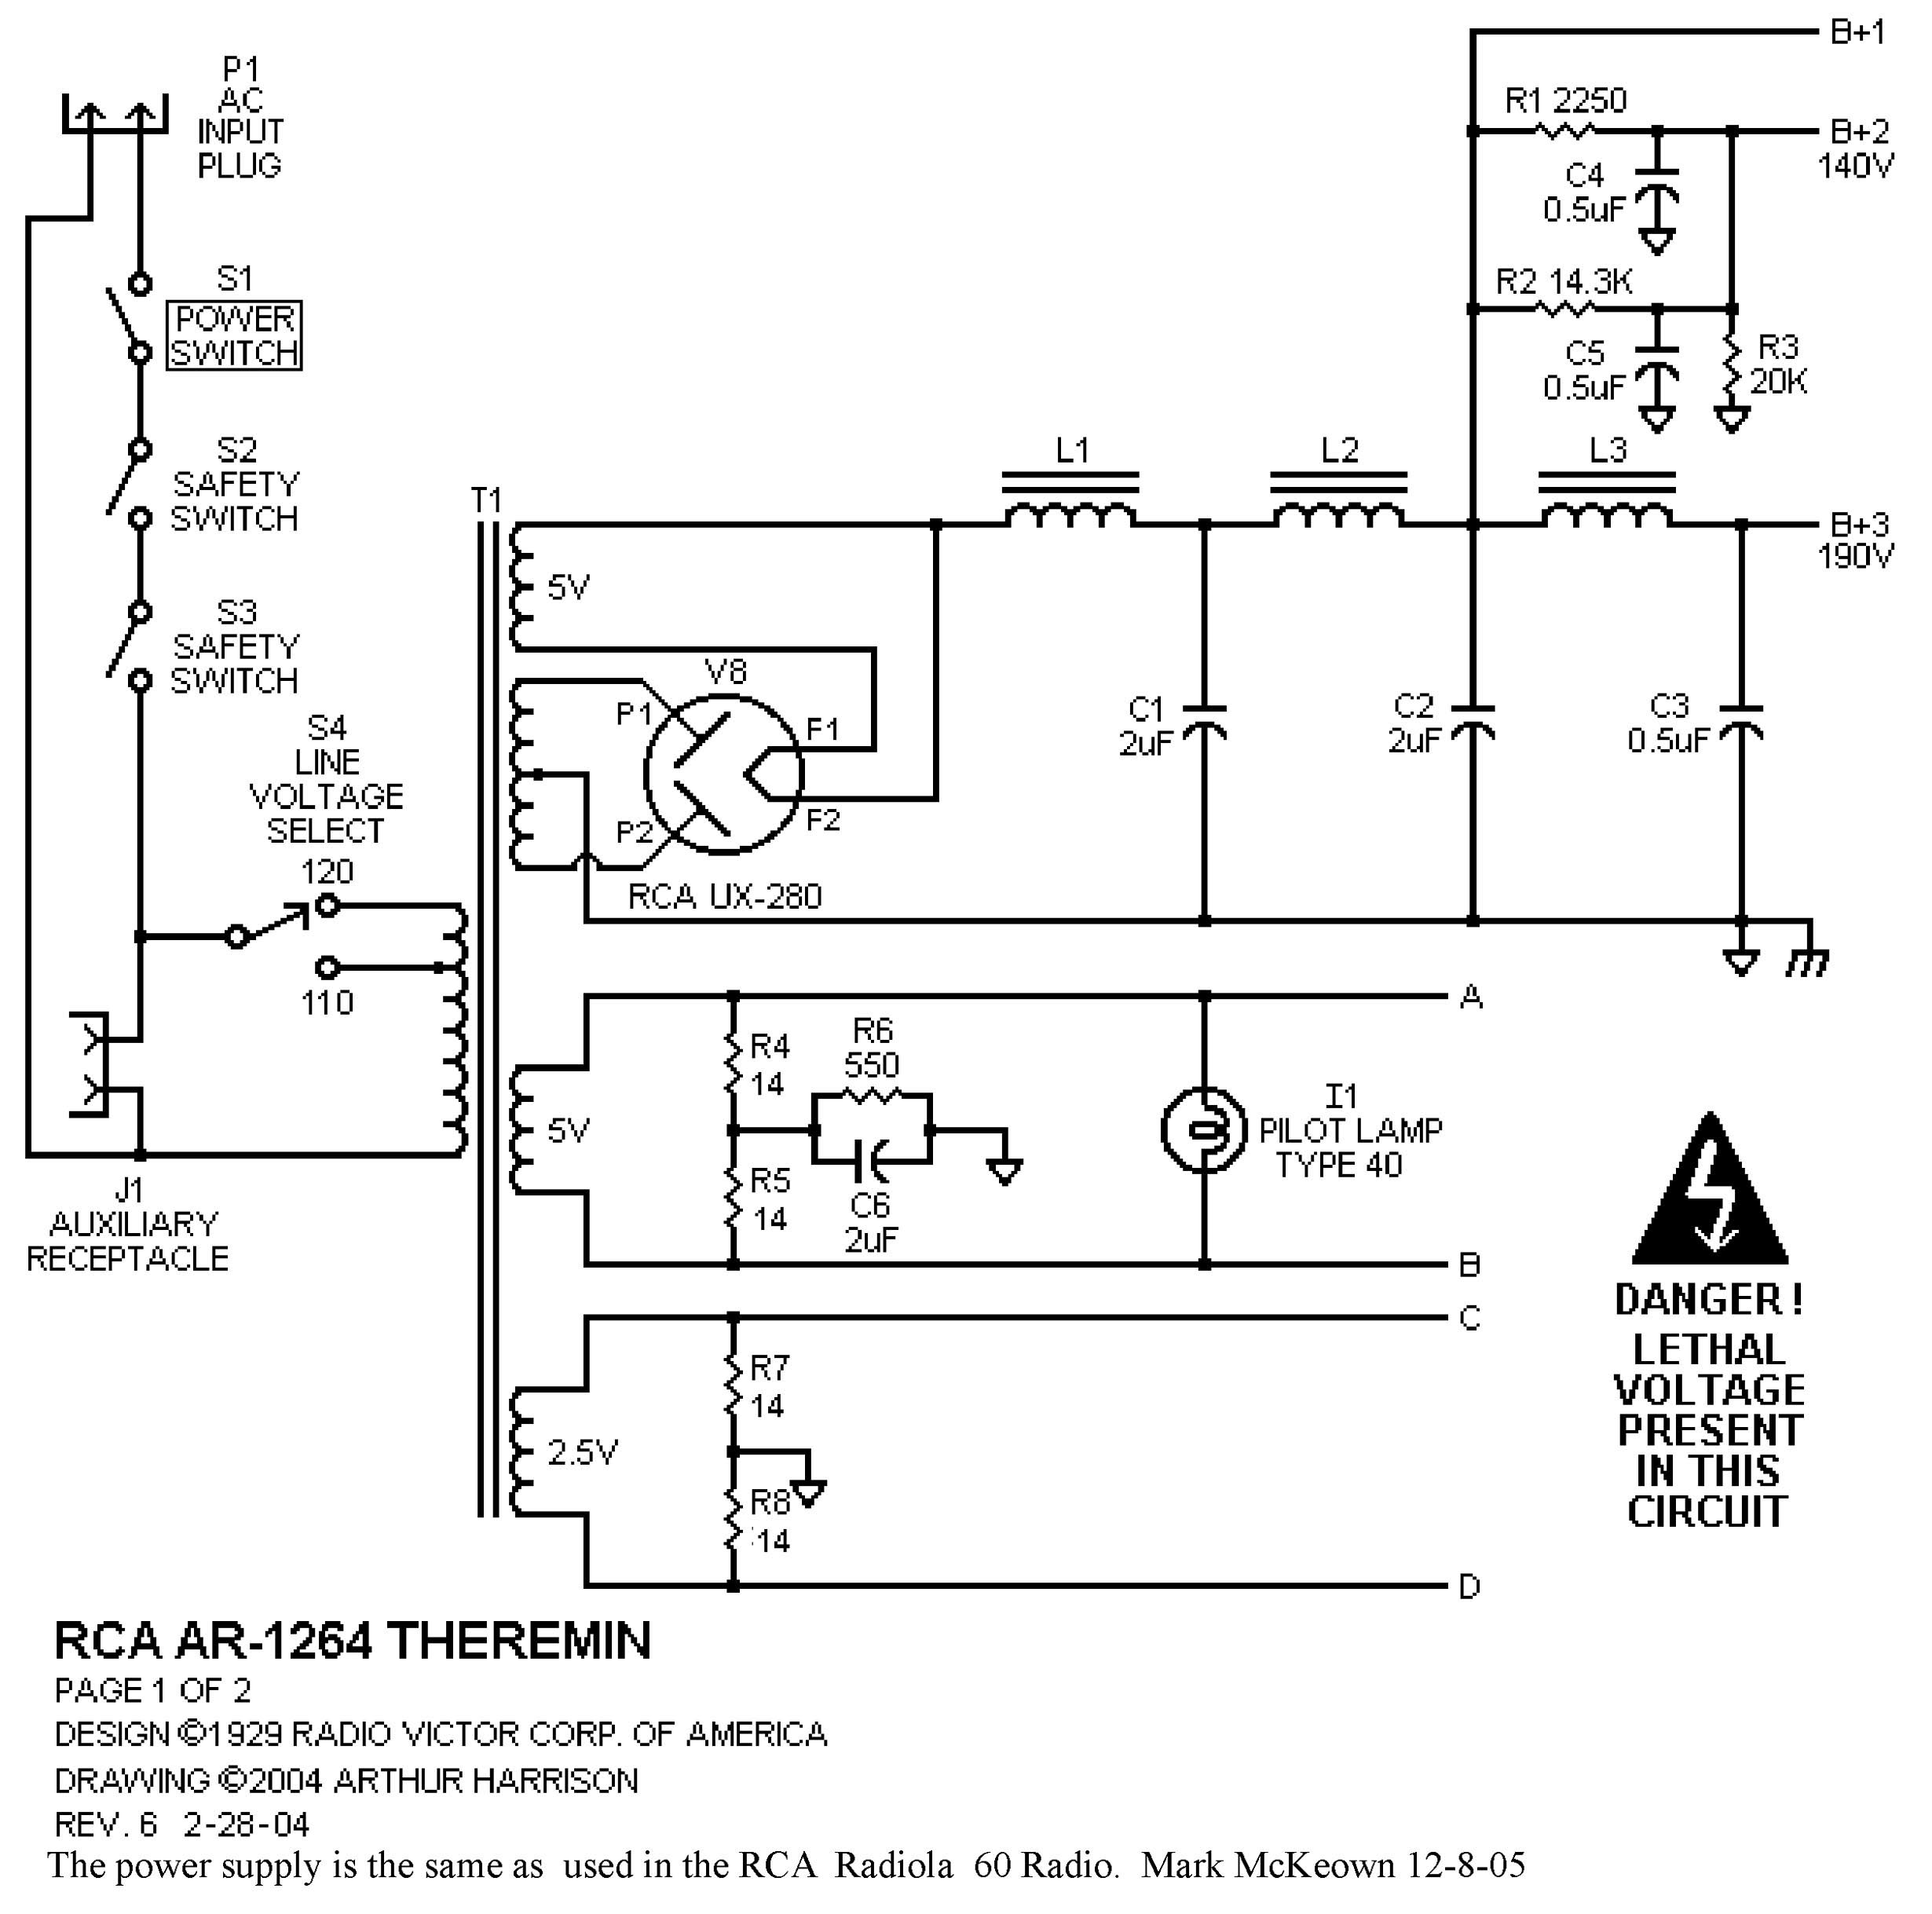 Theremin World - RCA Theremin Component Values and Cabinet Dimensions